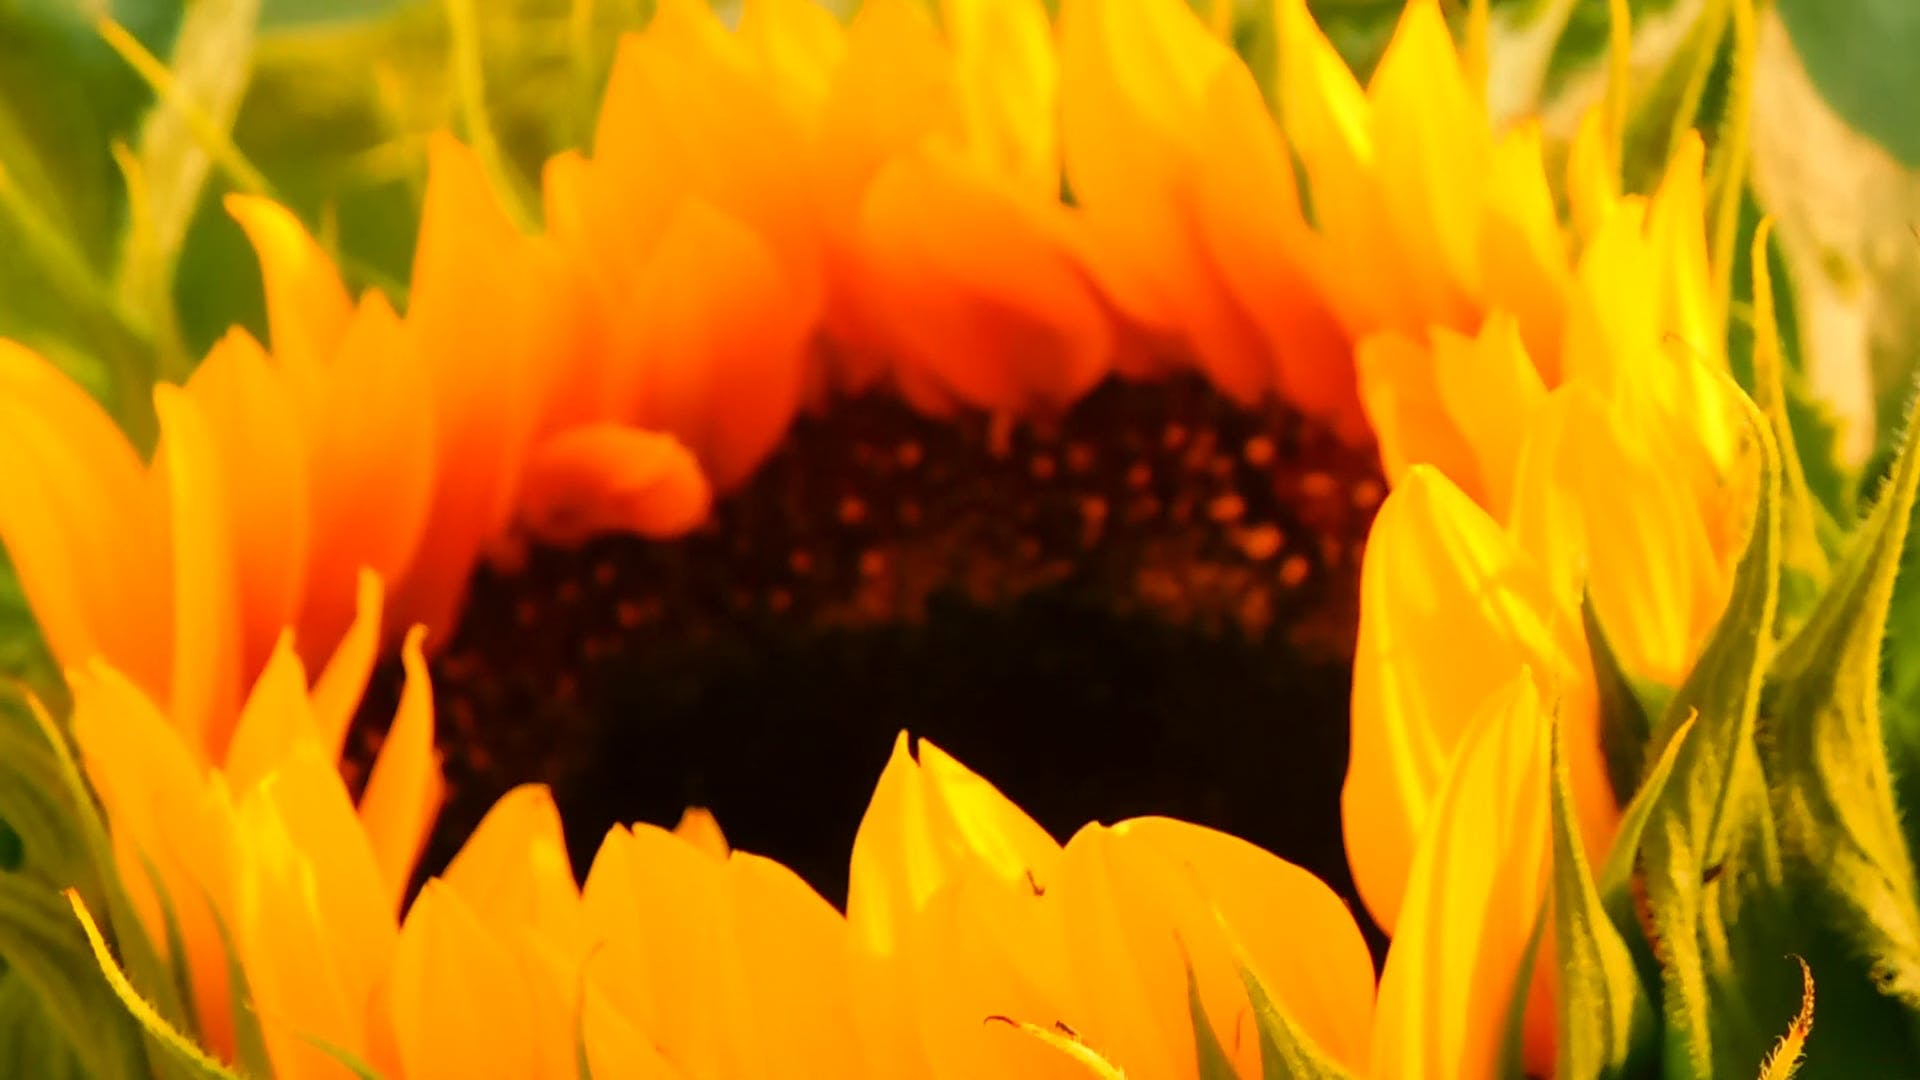 Close-Up Video of a Bright Sunflower